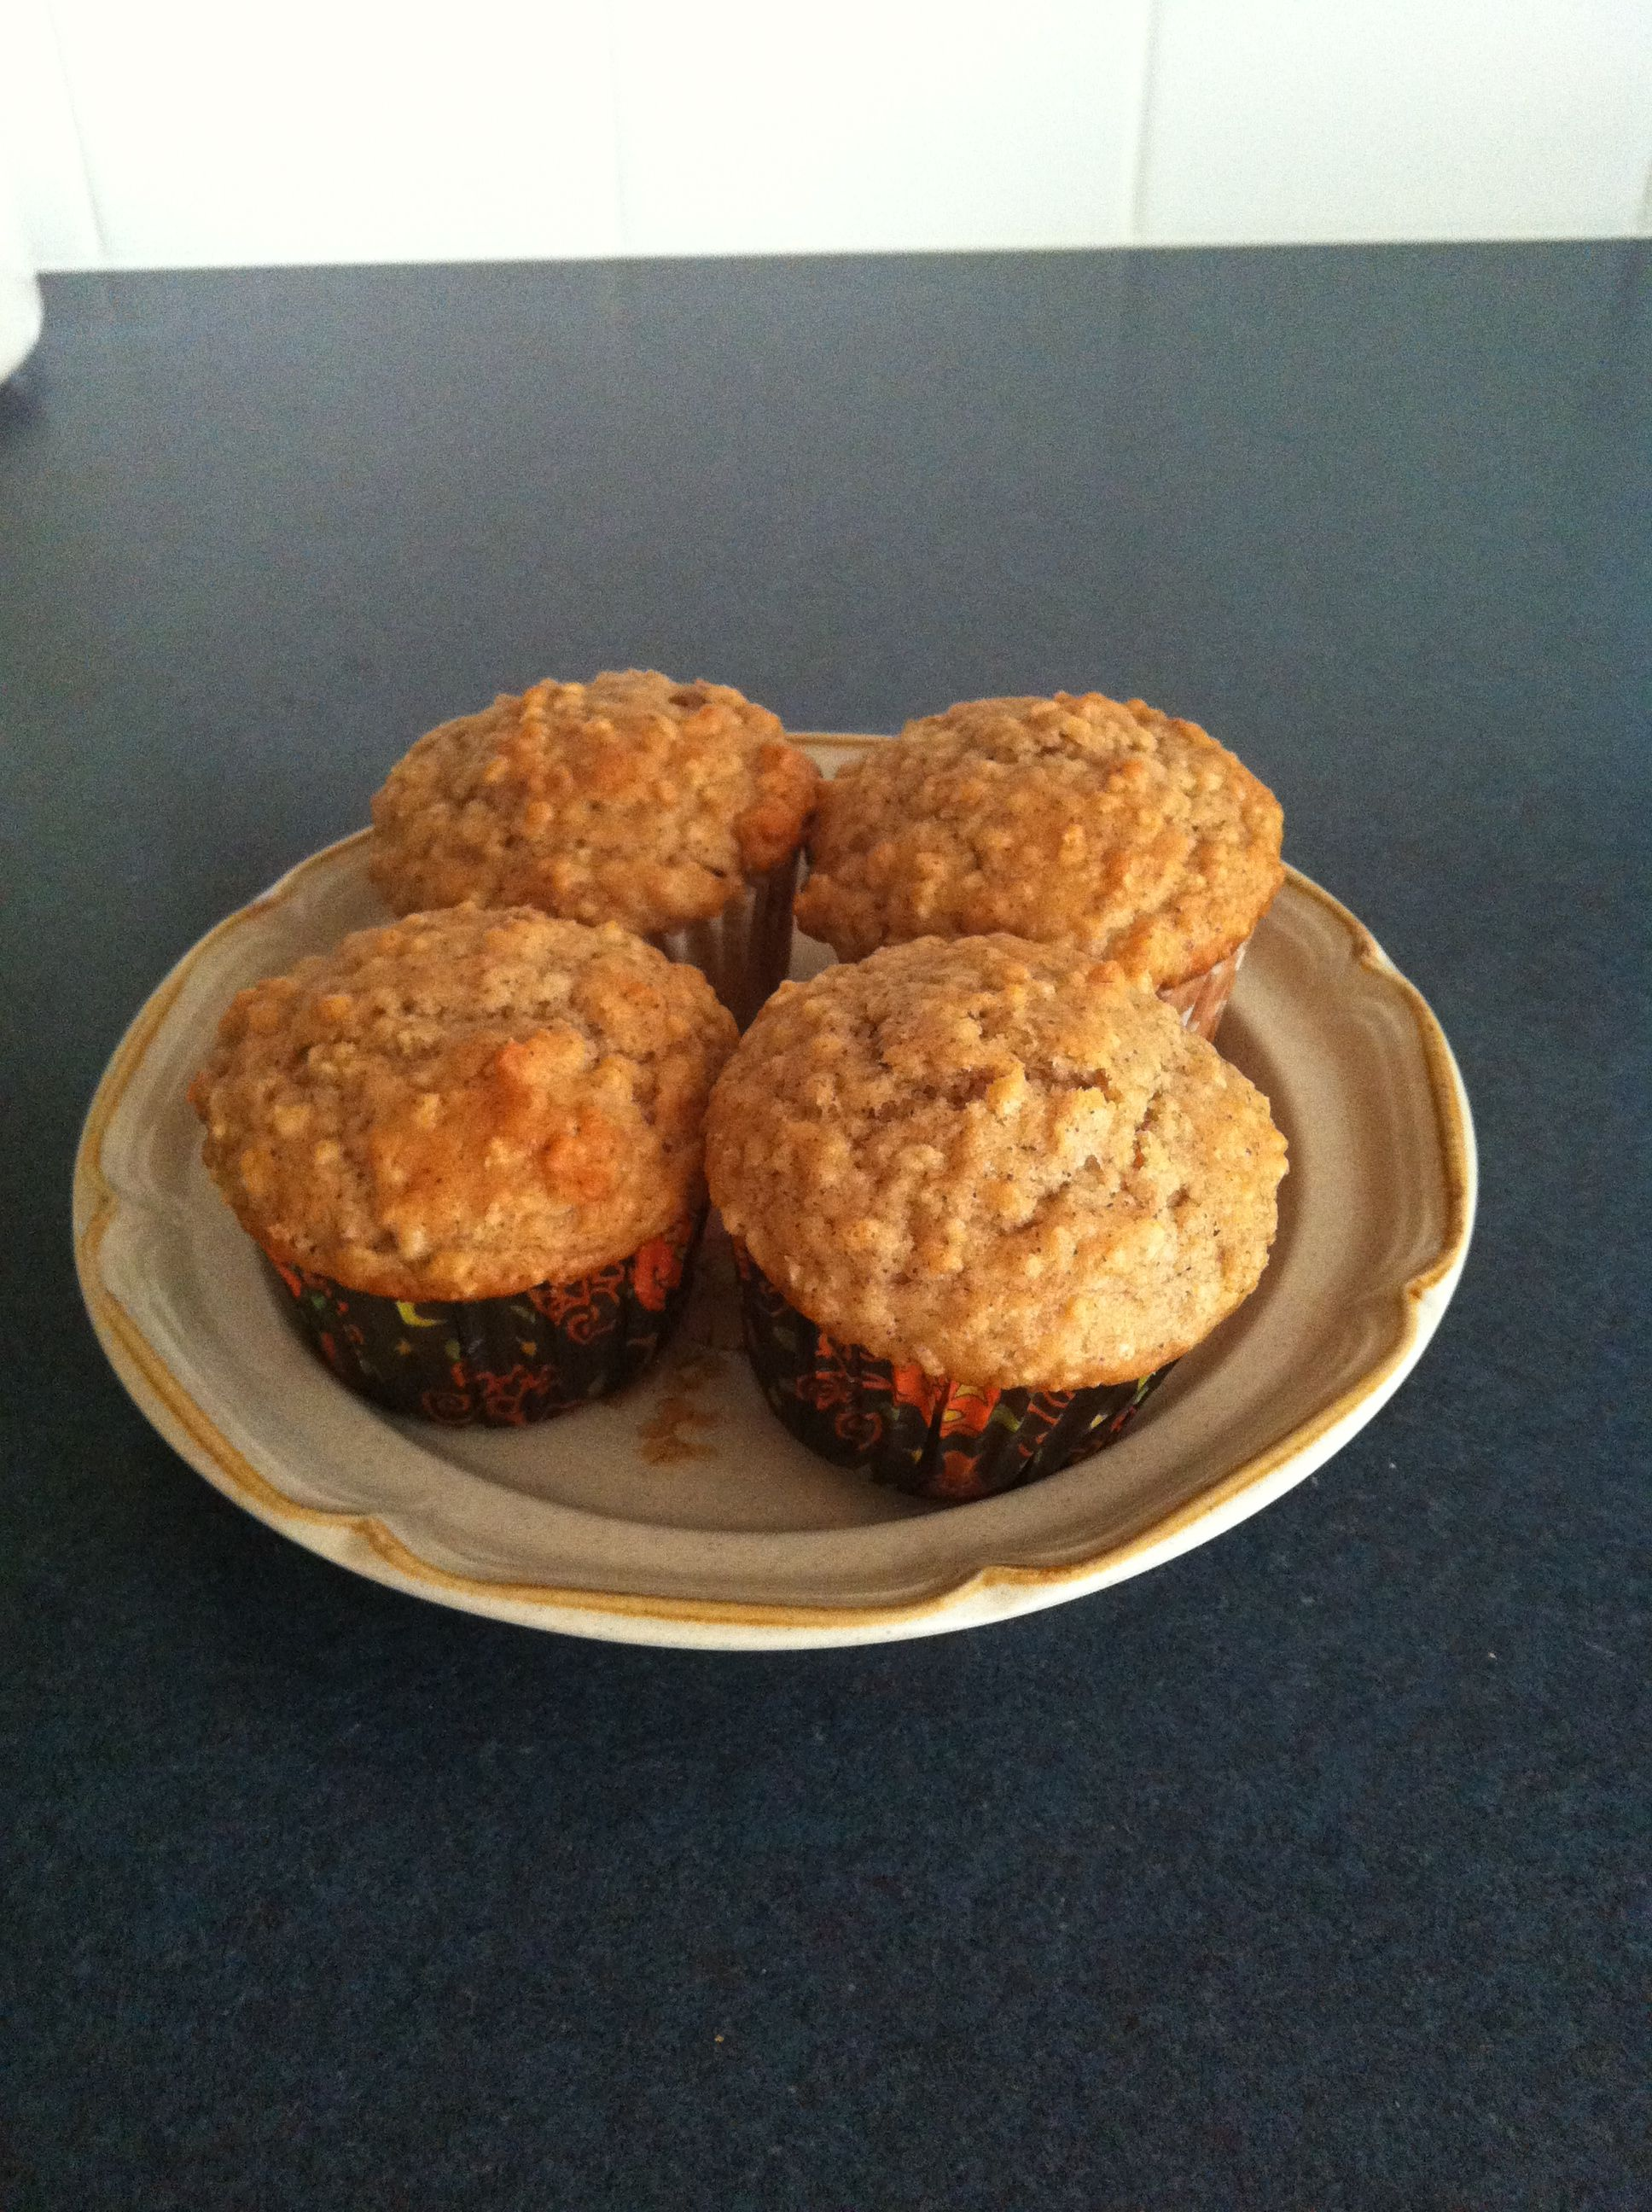 Homemade oatmeal muffins from companys coming mostly muffins homemade oatmeal muffins from companys coming mostly muffins recipe book great warmed up for cool forumfinder Images